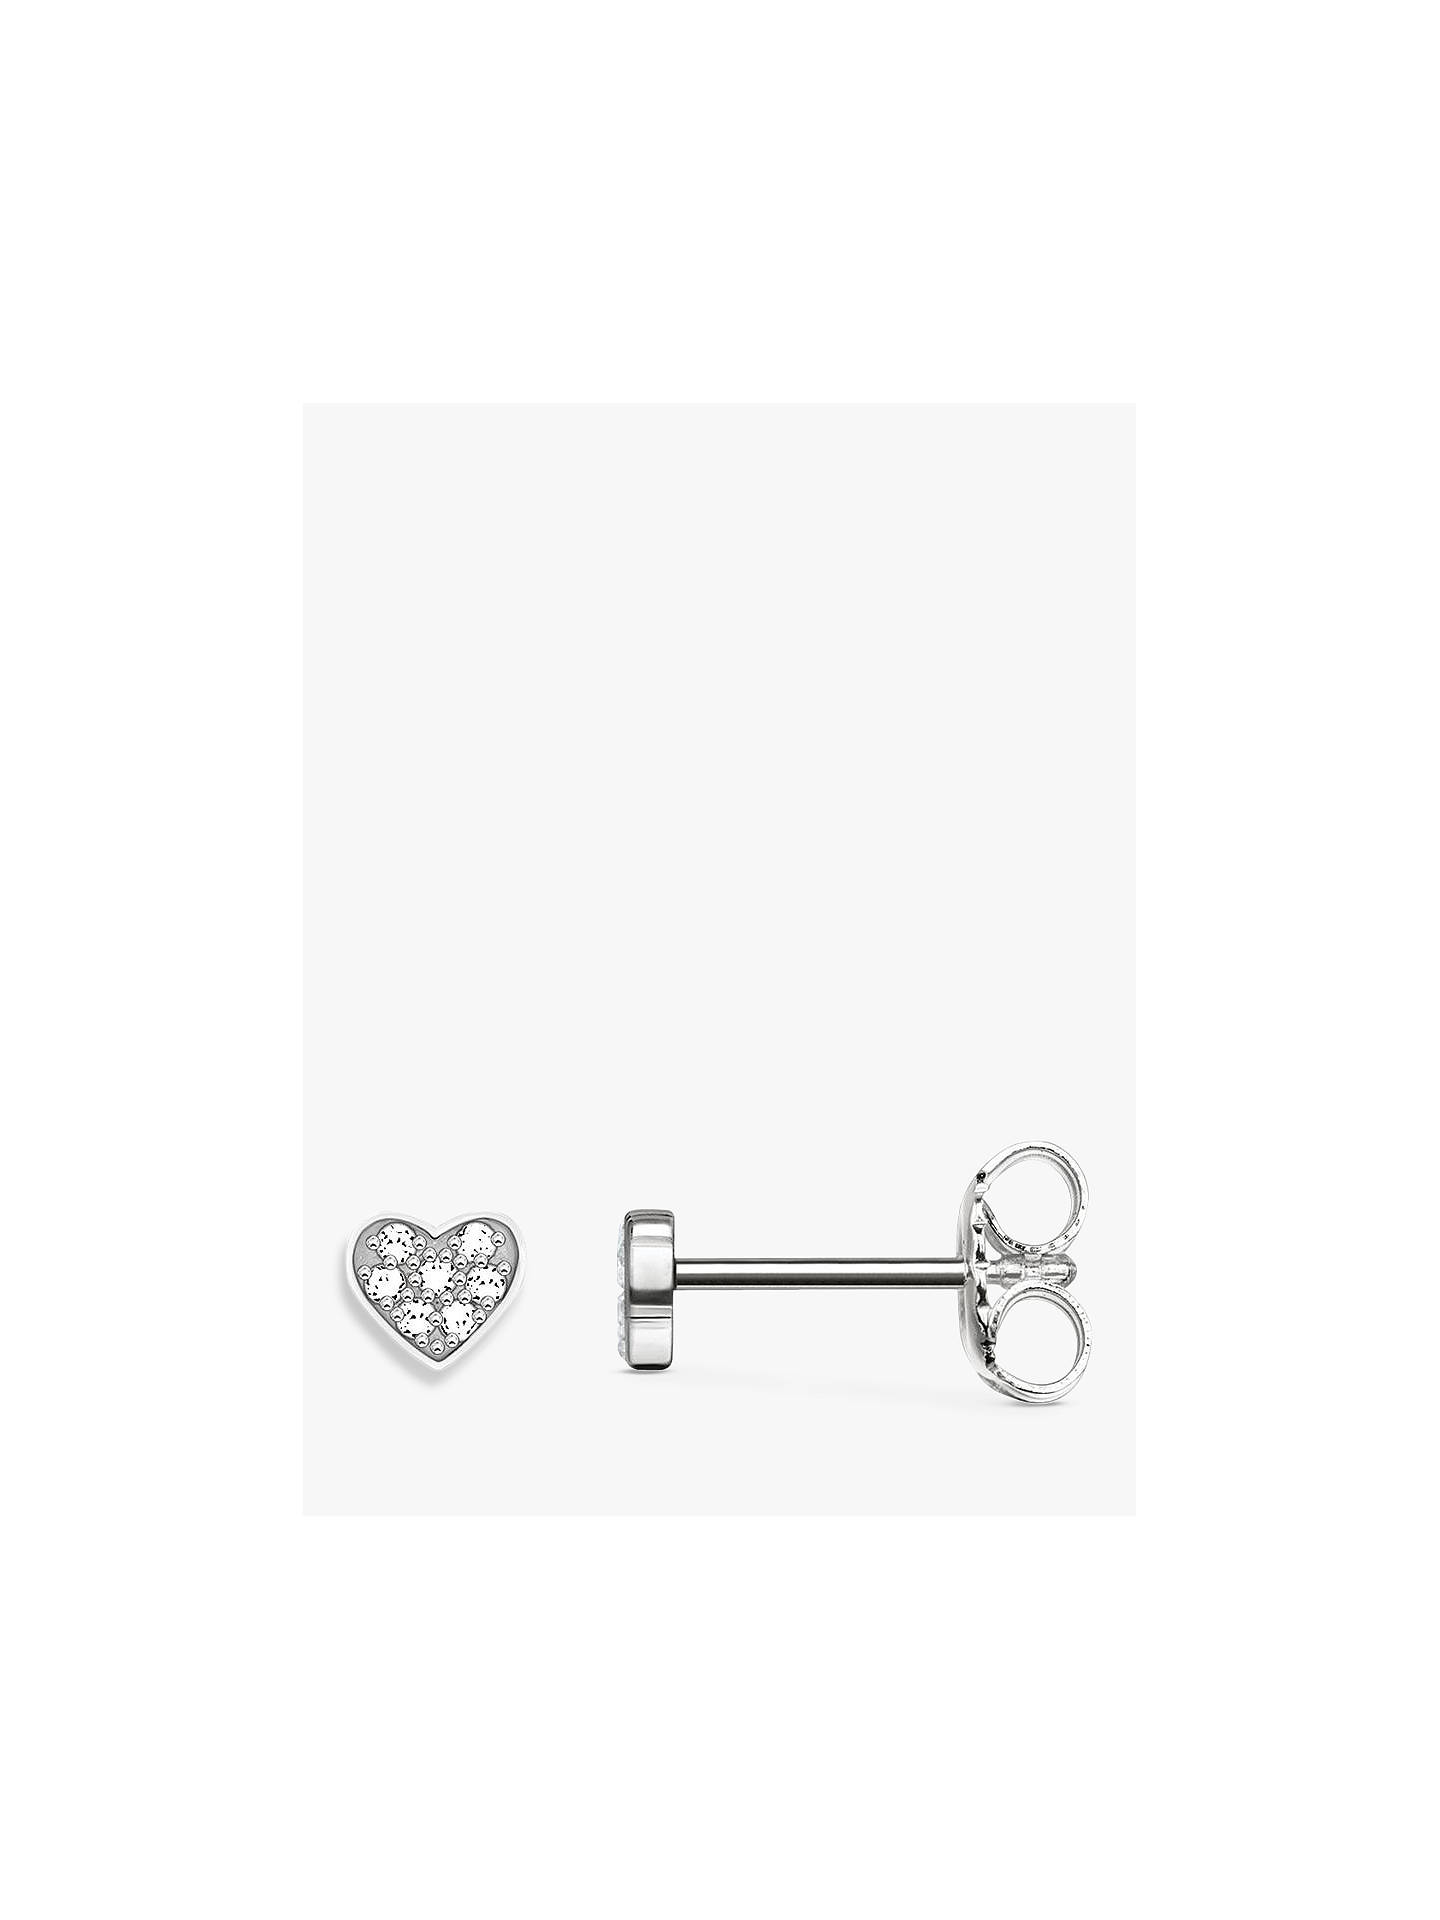 THOMAS SABO Glam & Soul Diamond Pavé Heart Stud Earrings Silver at